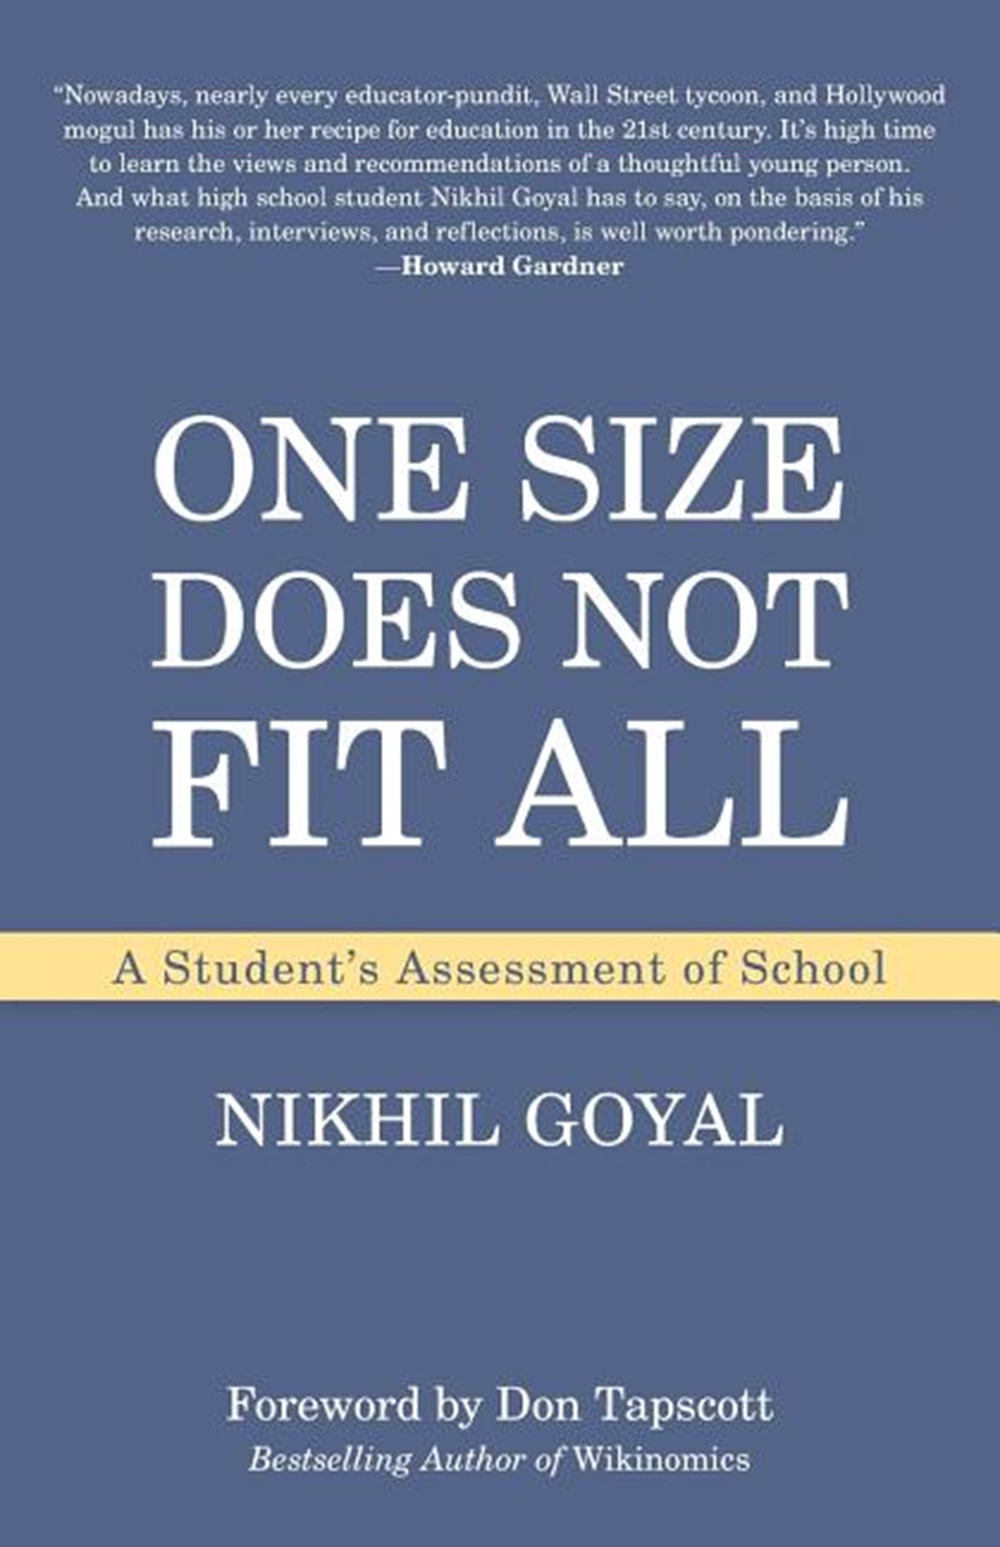 One Size Does Not Fit All A Student's Assessment of School